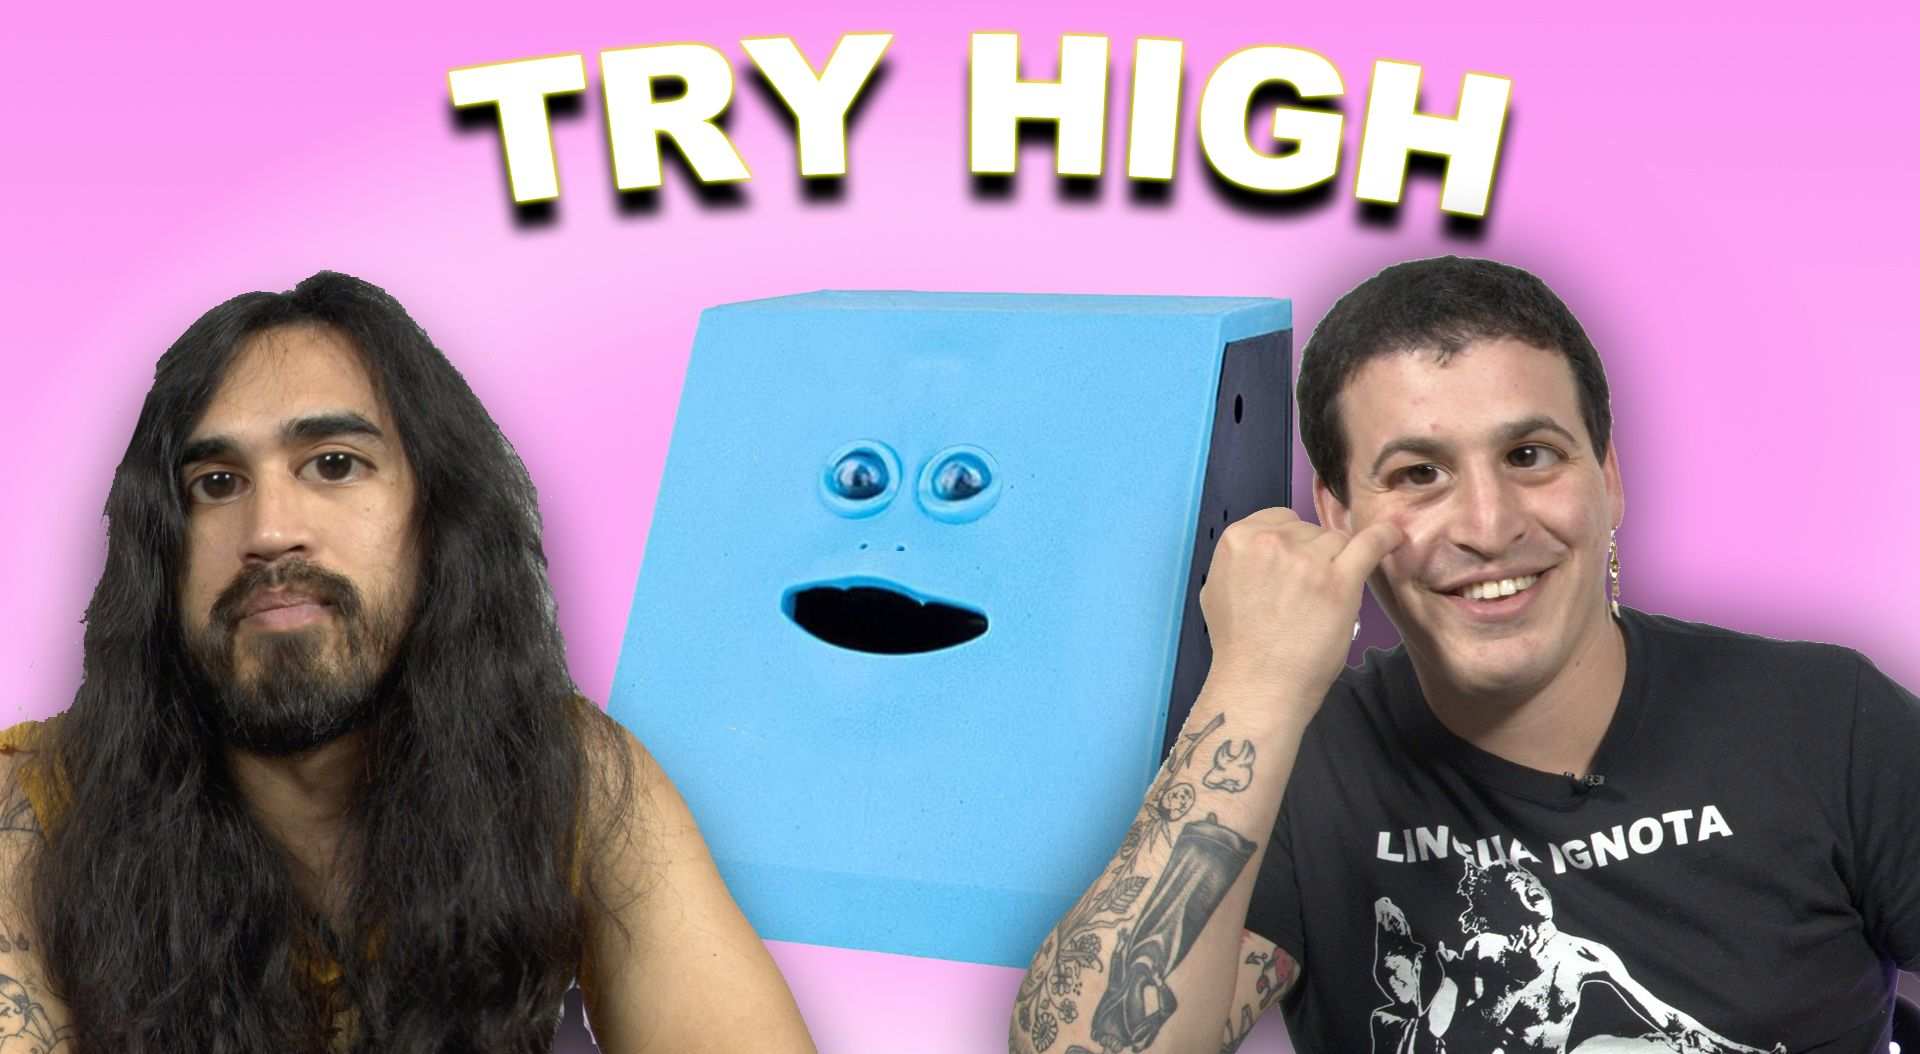 Dalton and Makal Test a Bank That Eats Your Money | TRY HIGH